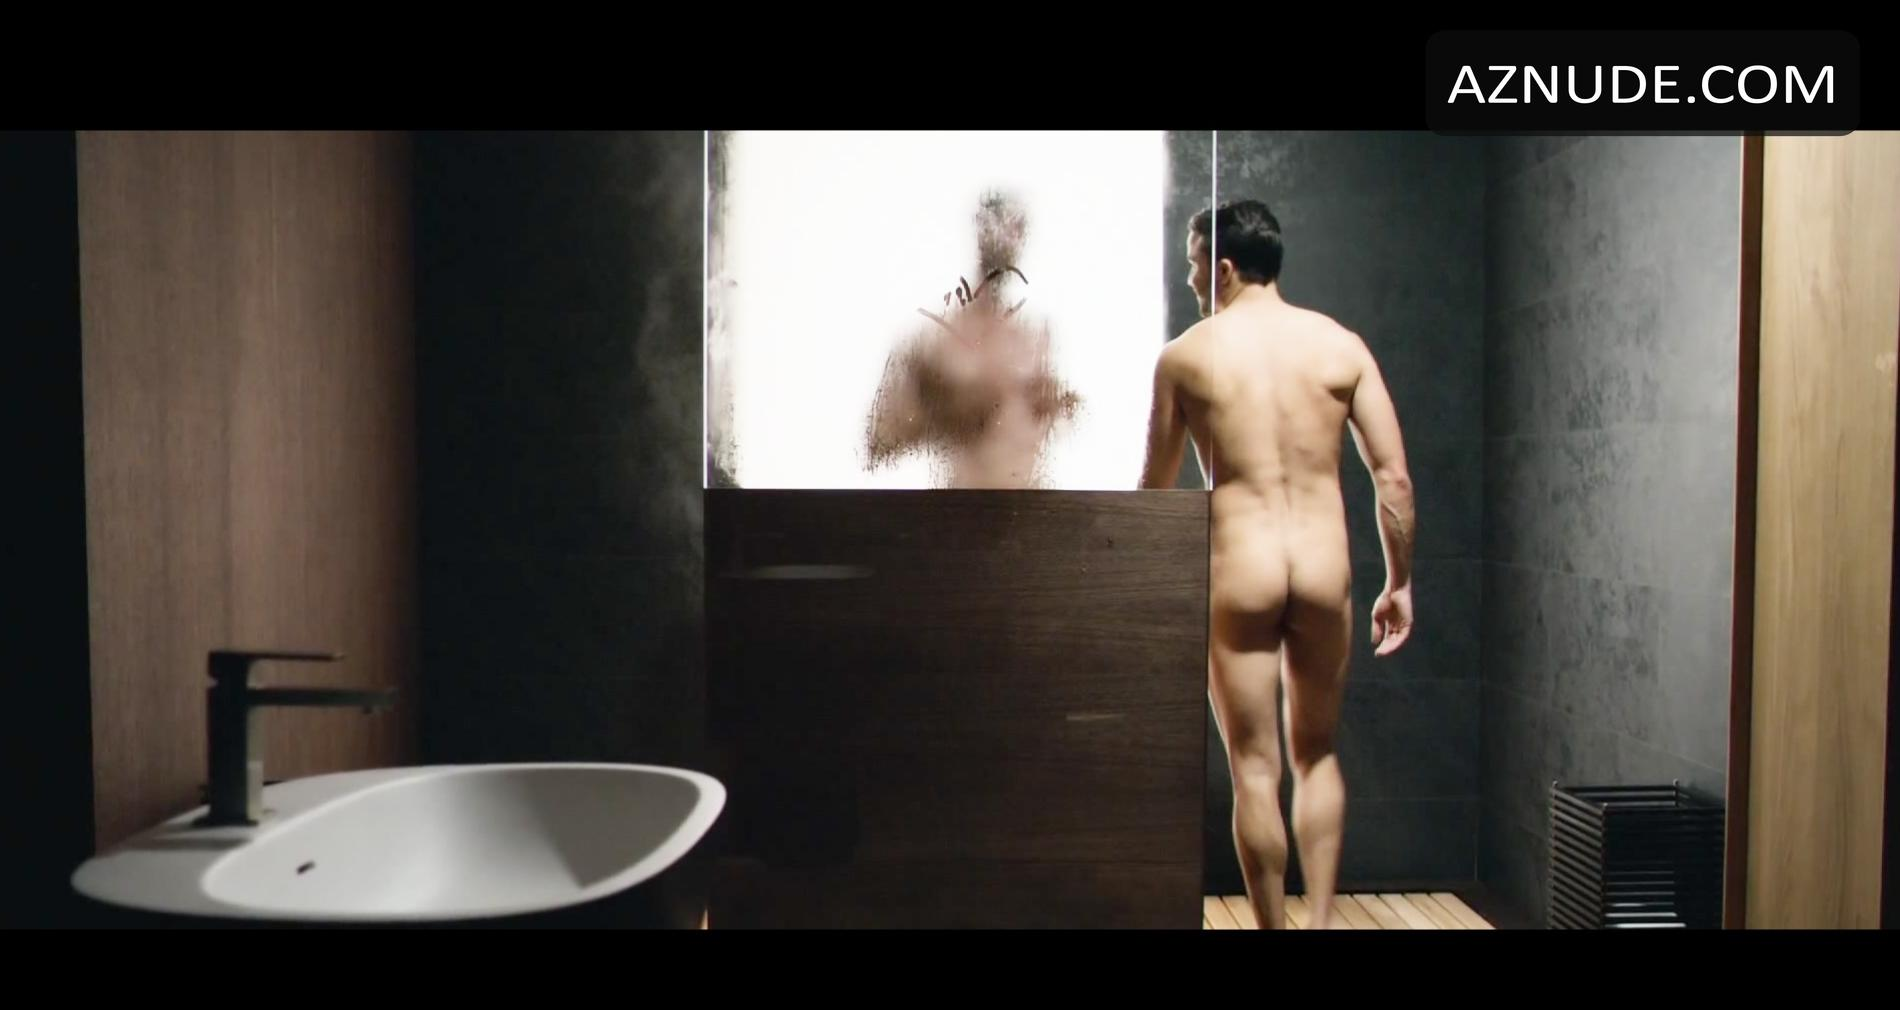 from Guillermo gay men shirtless